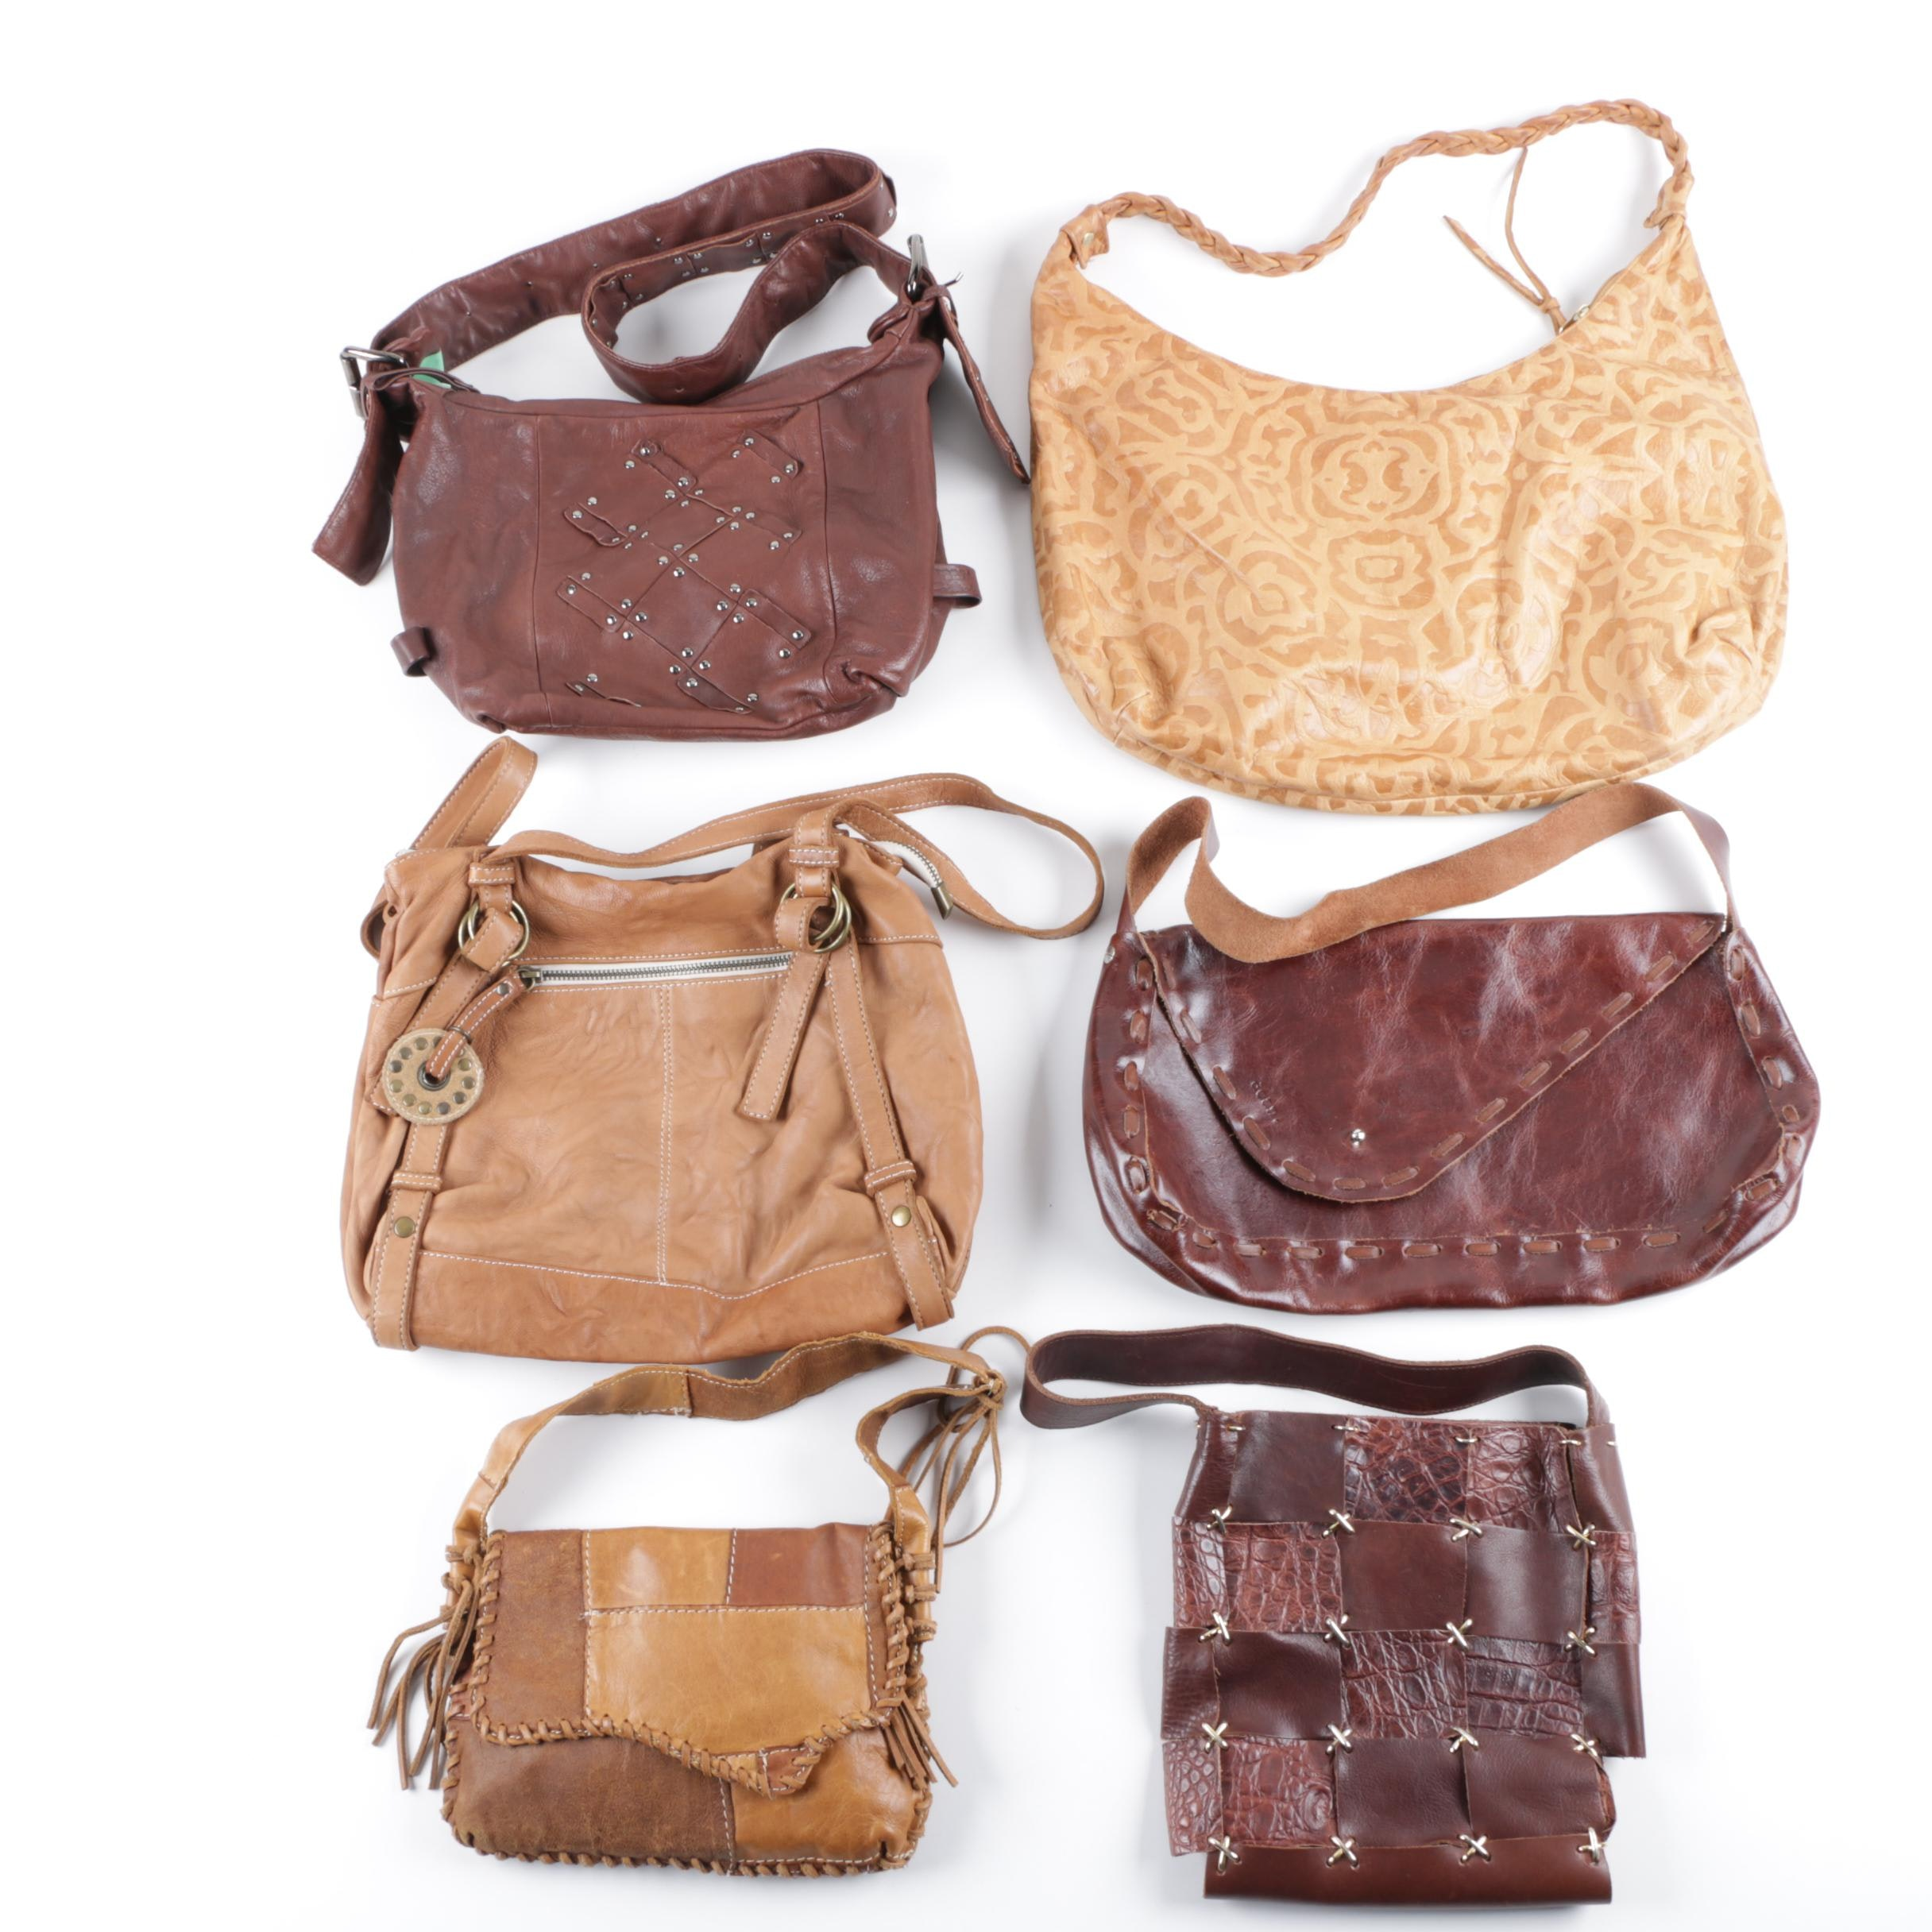 Leather Shoulder Bags Including Zara Terez, Tosca Blu, and Amy 8 Chan